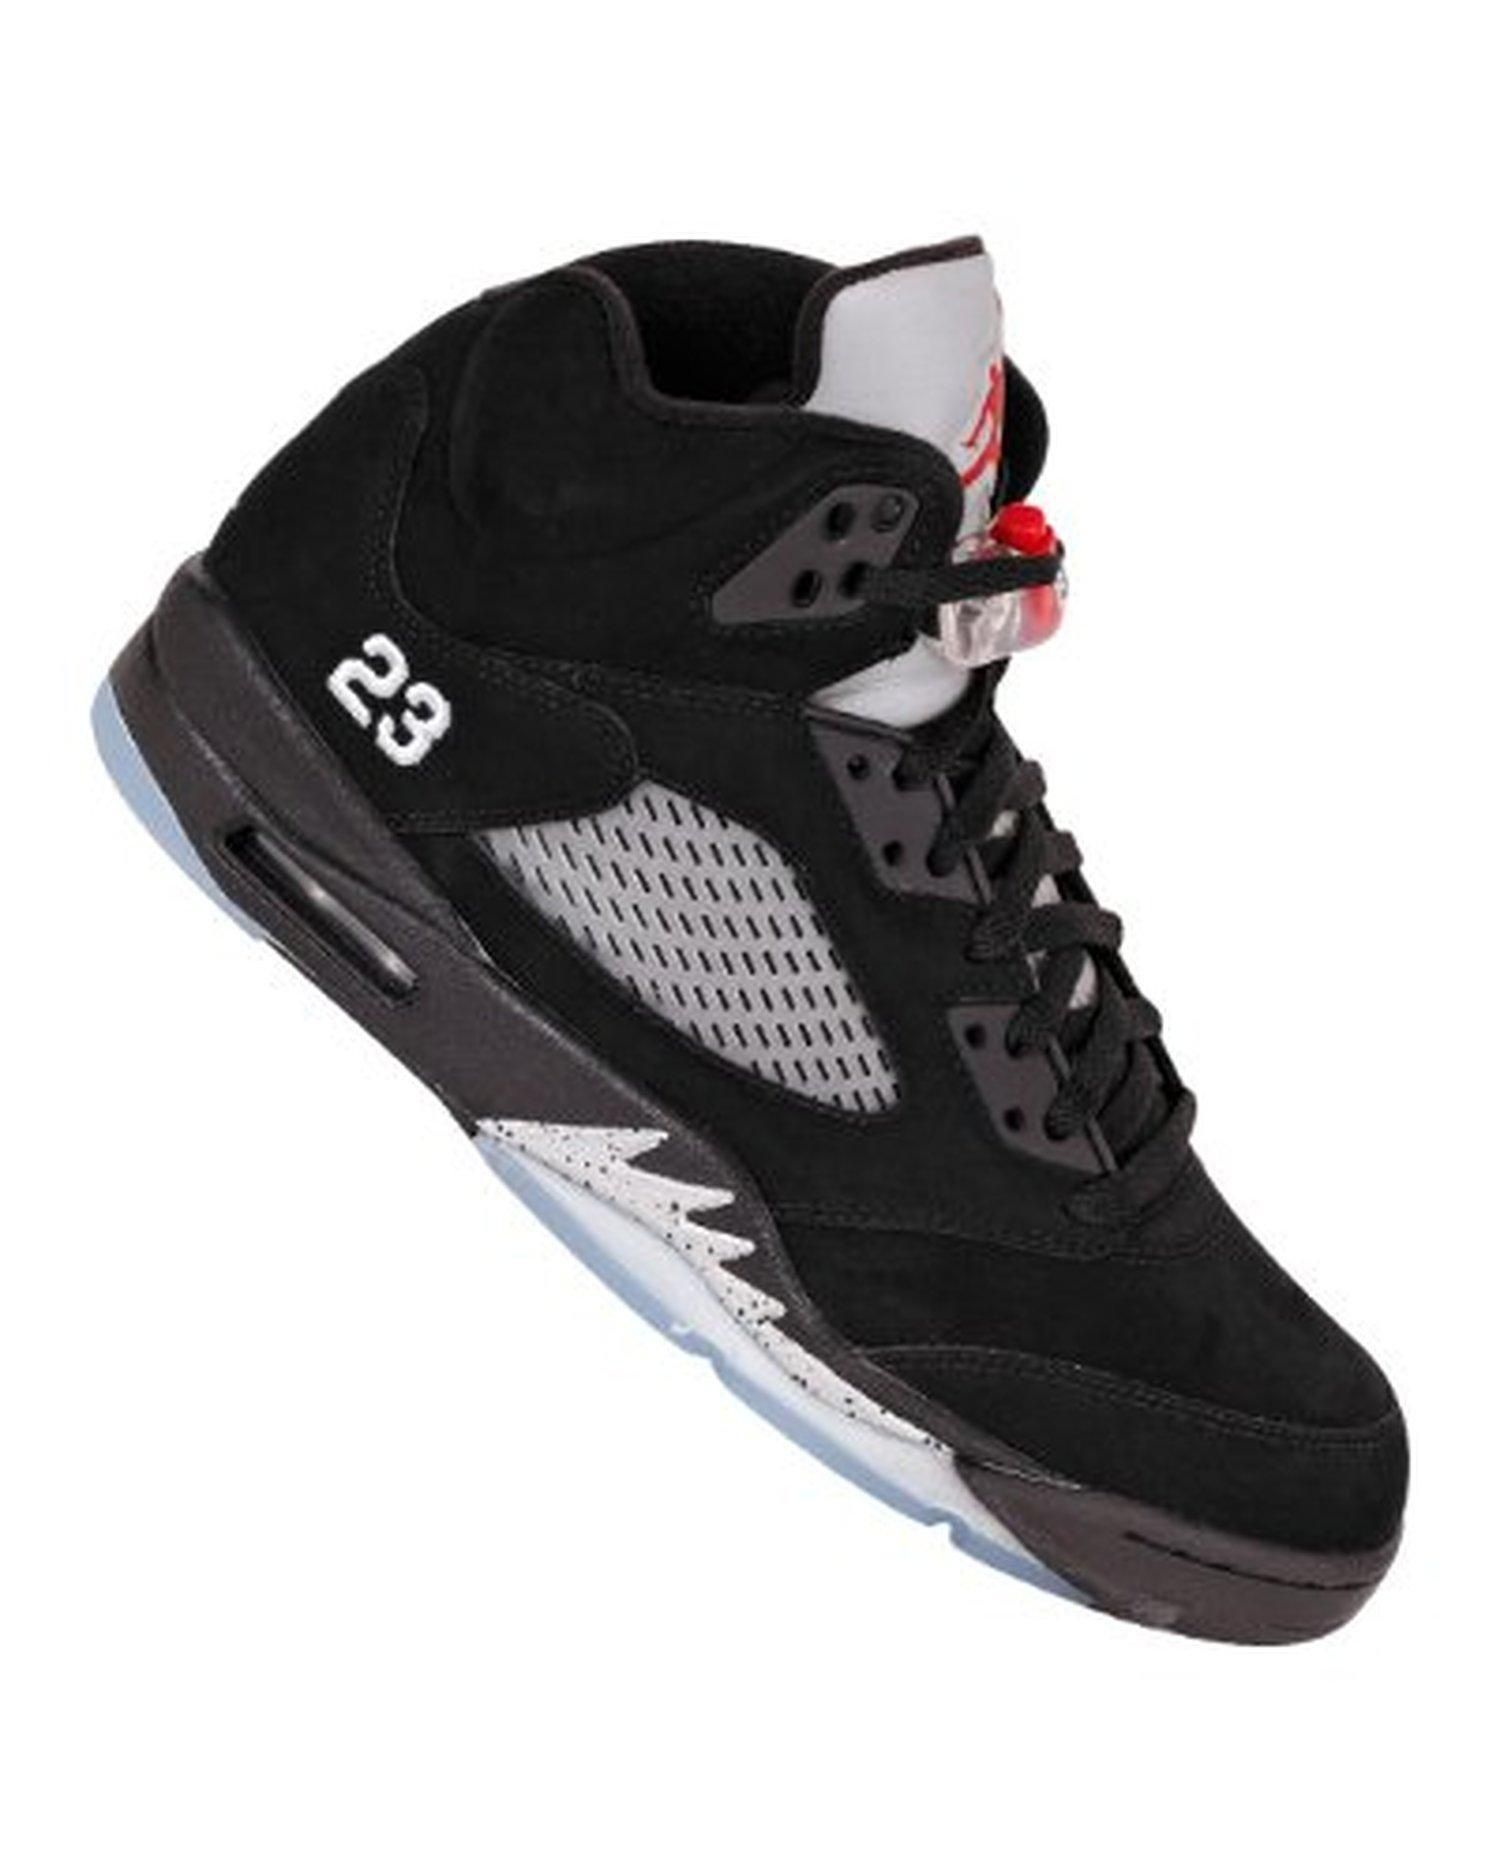 6556eebbcce Nike Air Jordan 5 Retro Mens Basketball Shoes 2011 [136027-010] Black/Varsity  Red-Metallic Silver Mens Shoes 136027-010-9.5 - Brought to you by Avarsha. com